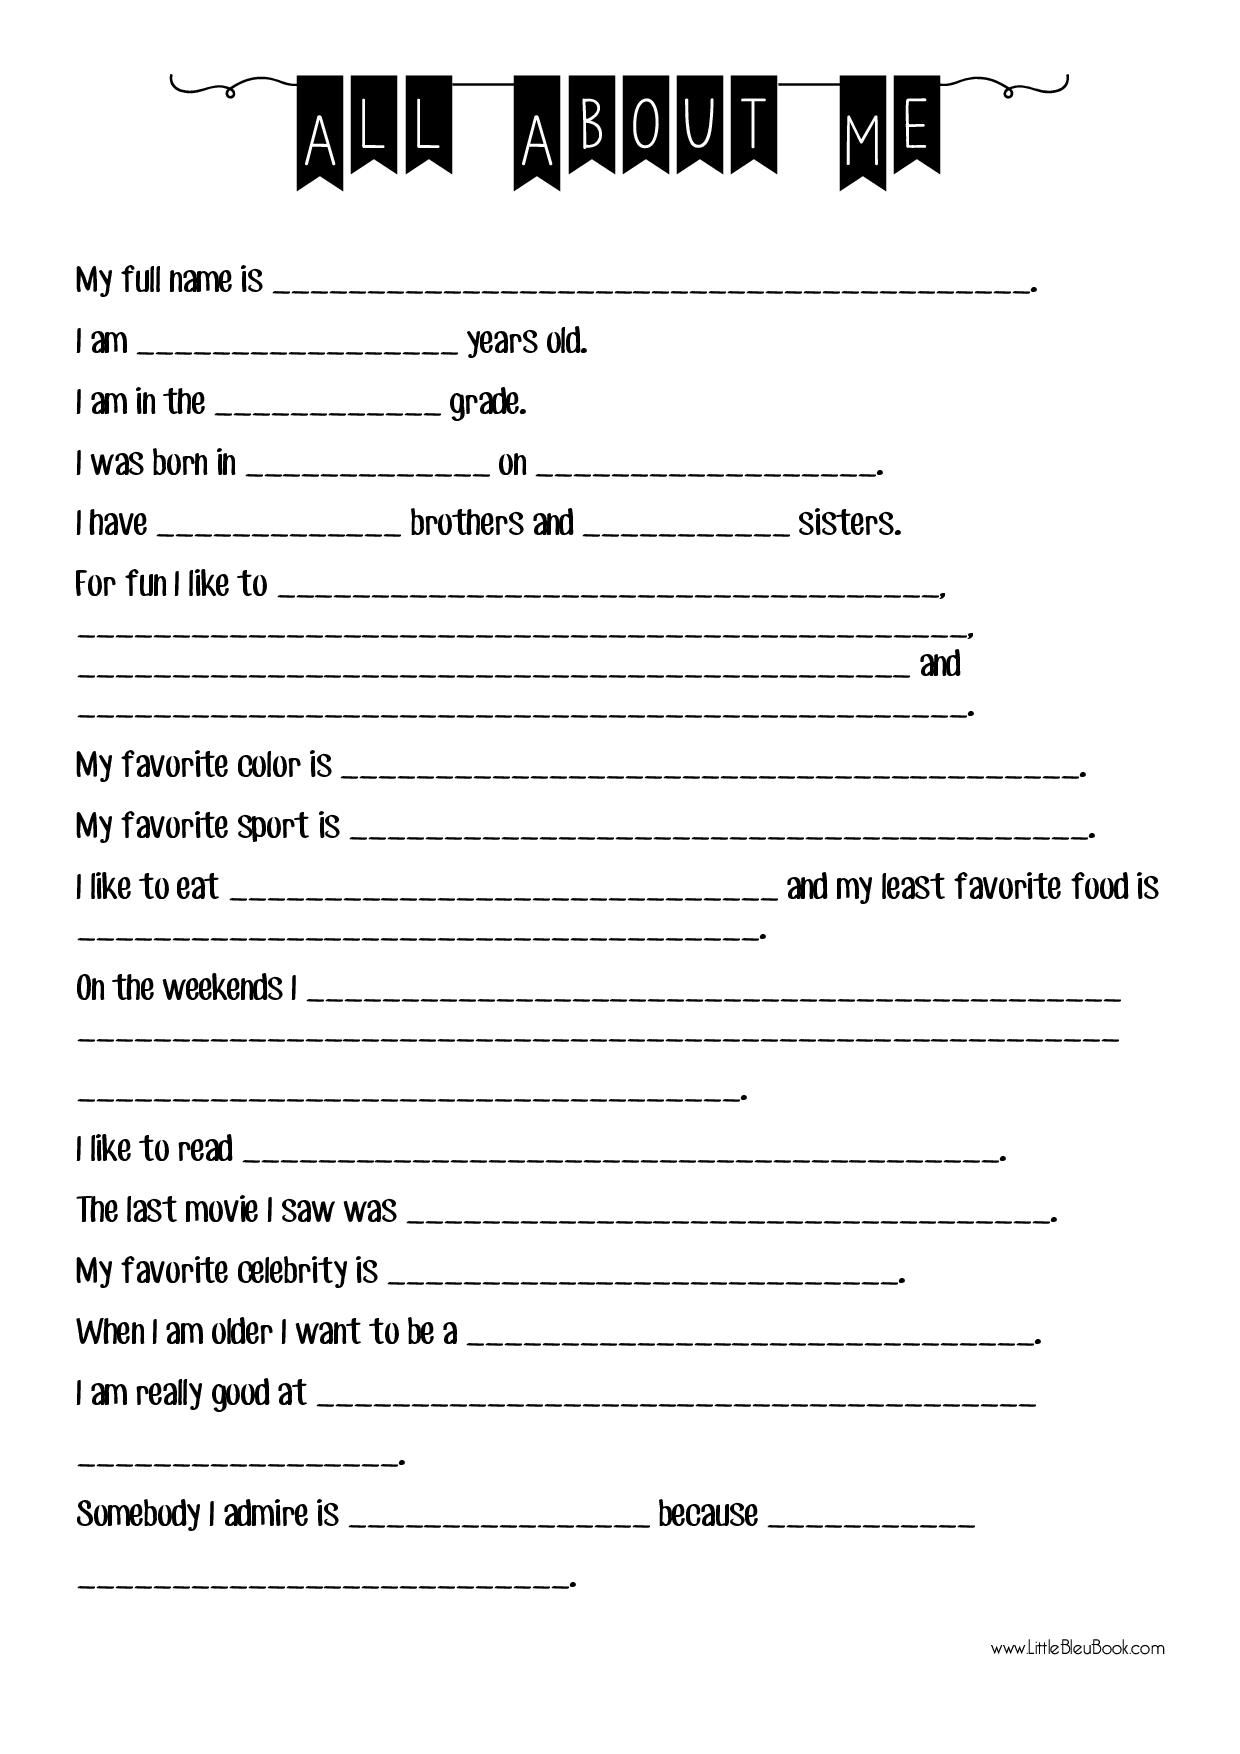 All About Me Worksheet Little Bleu Book